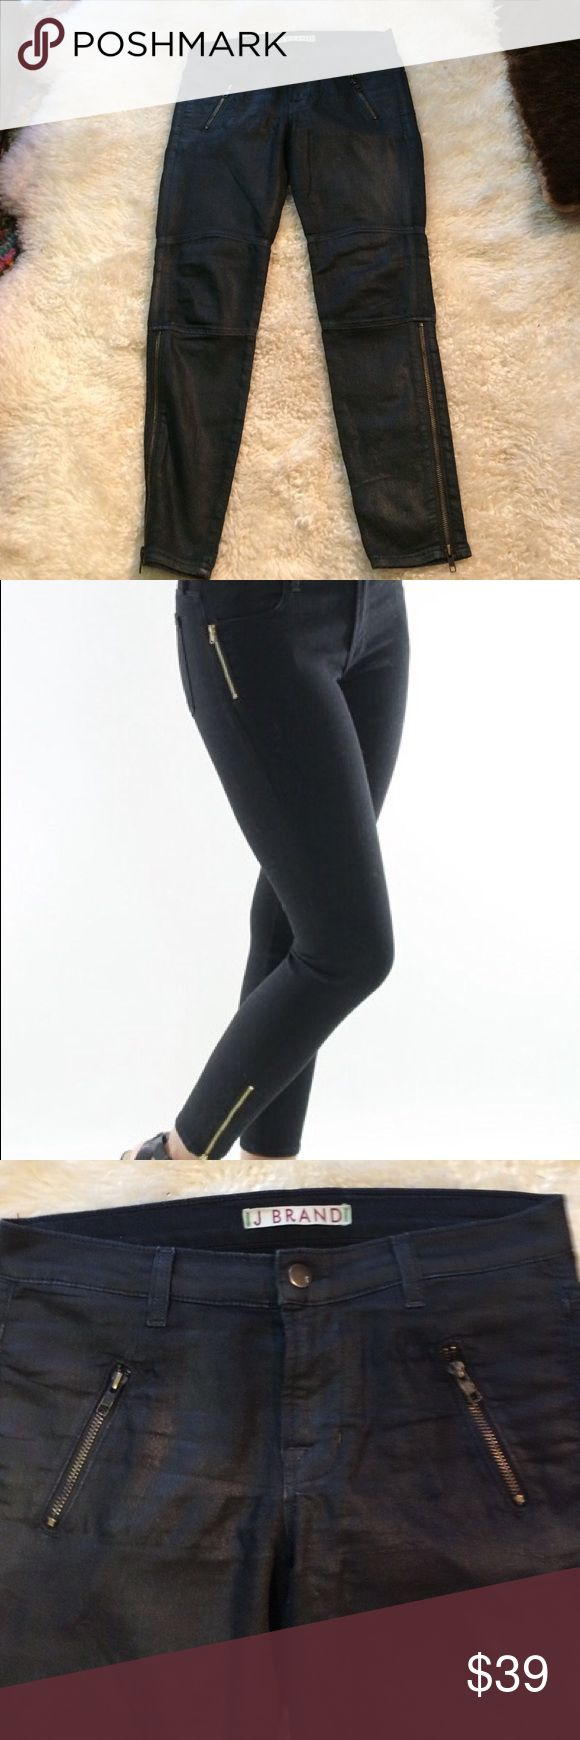 """🎉 j Brand Zipper Skinny👖Size 27 comfy stretch The Zipper Skinny Jean by J Brand is edgy with gold zip accents in vanity. Cropped style. Features four pocket styling with zip fly and one button closure. Gold hardware. The essential black jean. 9.5 inch front rise. 28""""inseam measured   92.5 percent cotton 5 % polyester 2.5% Made in the USA.  There is no label contents the information about was taken from the Internet on the J. brand site J Brand Jeans Skinny"""